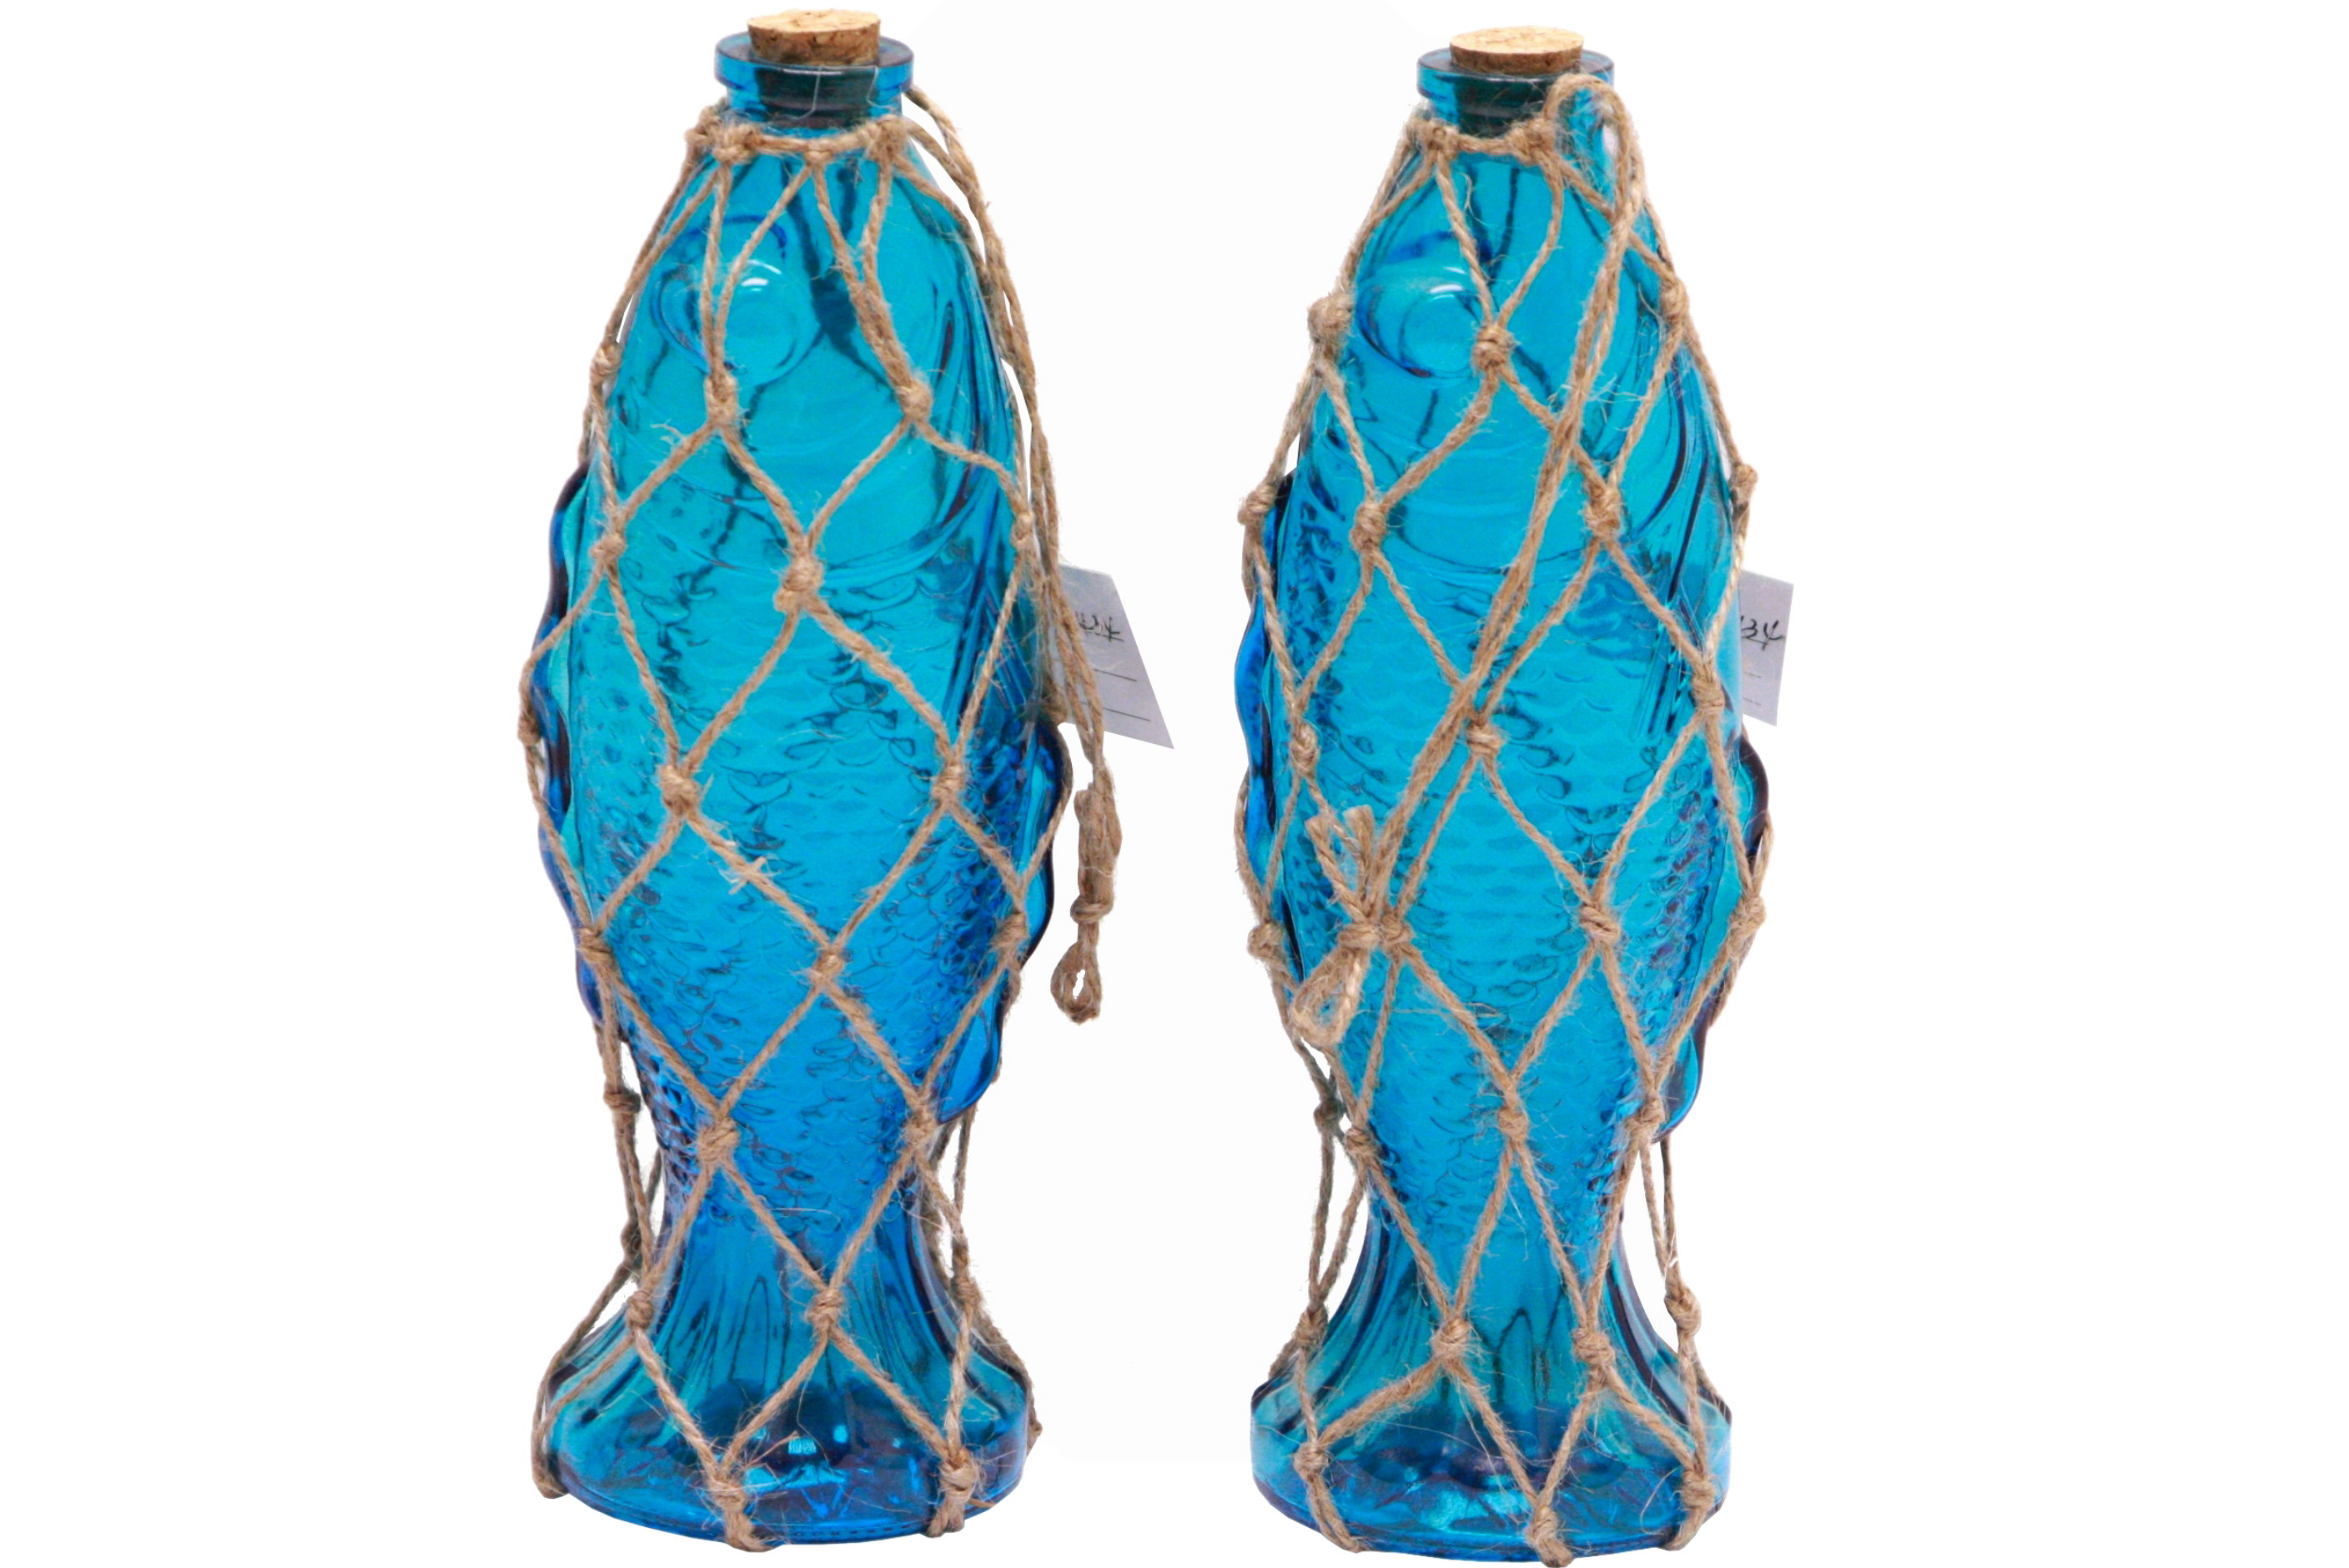 Fish Shape Glass Bottle In Netting With Cork